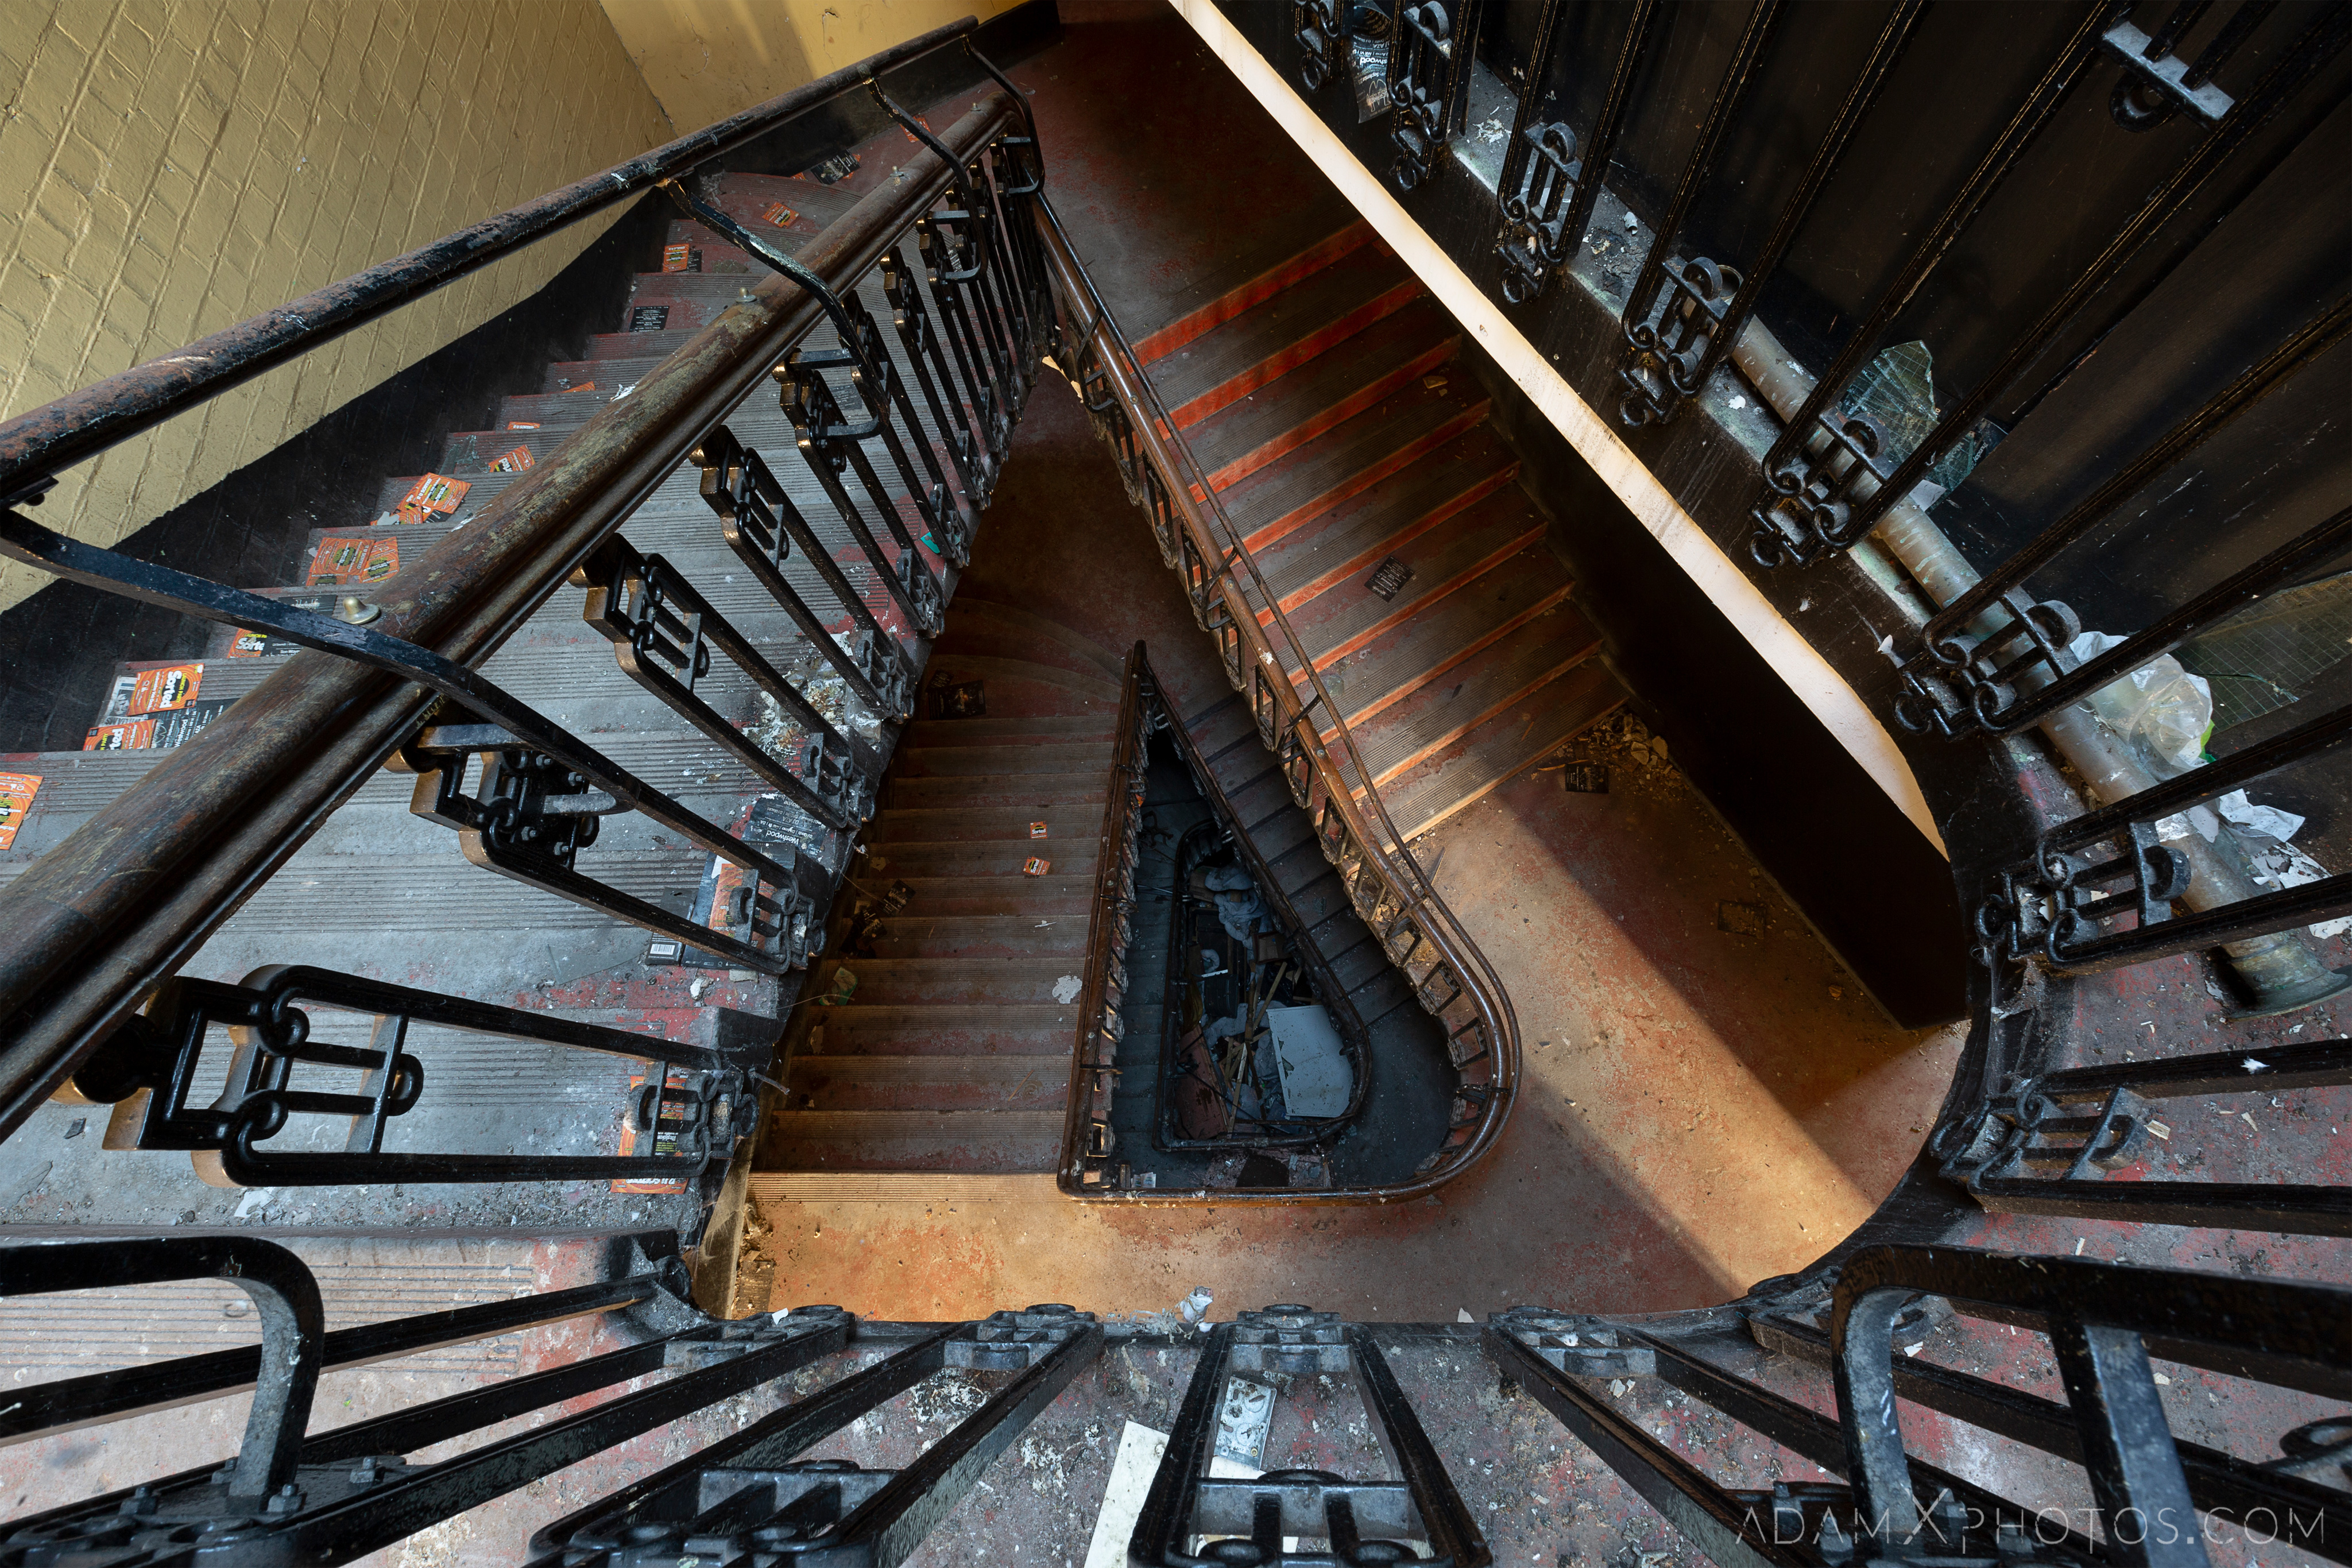 Looking down staircase triangular ornate Birmingham Methodist Central Hall Q Club Adam X Urbex Urban Exploration Access 2018 Abandoned decay lost forgotten derelict location creepy haunting eerie